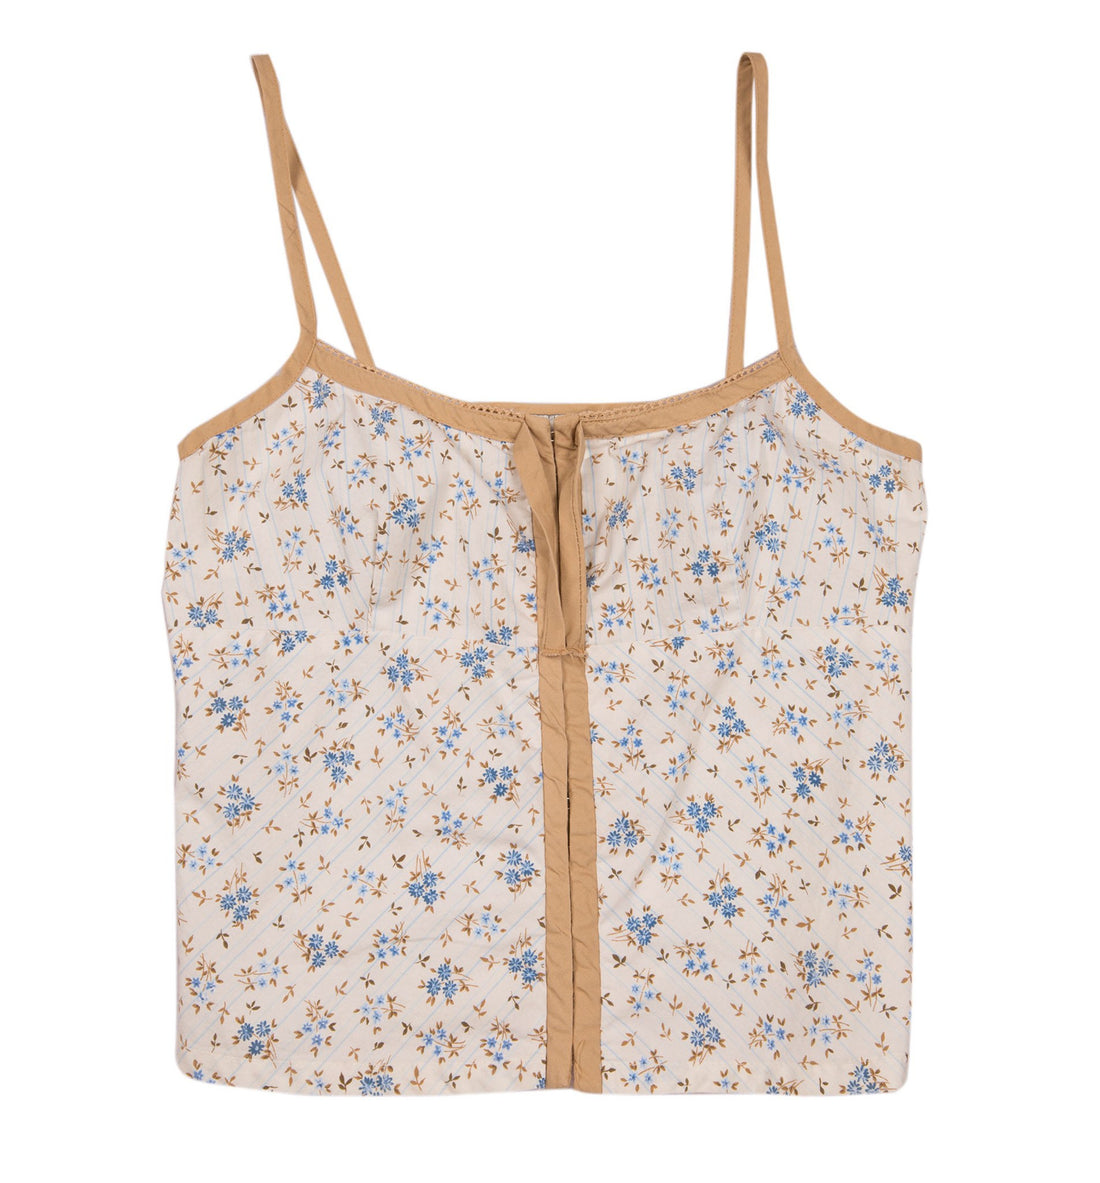 Vintage Floral Tank Top - Vintage: Women's: Apparel - Iron and Resin